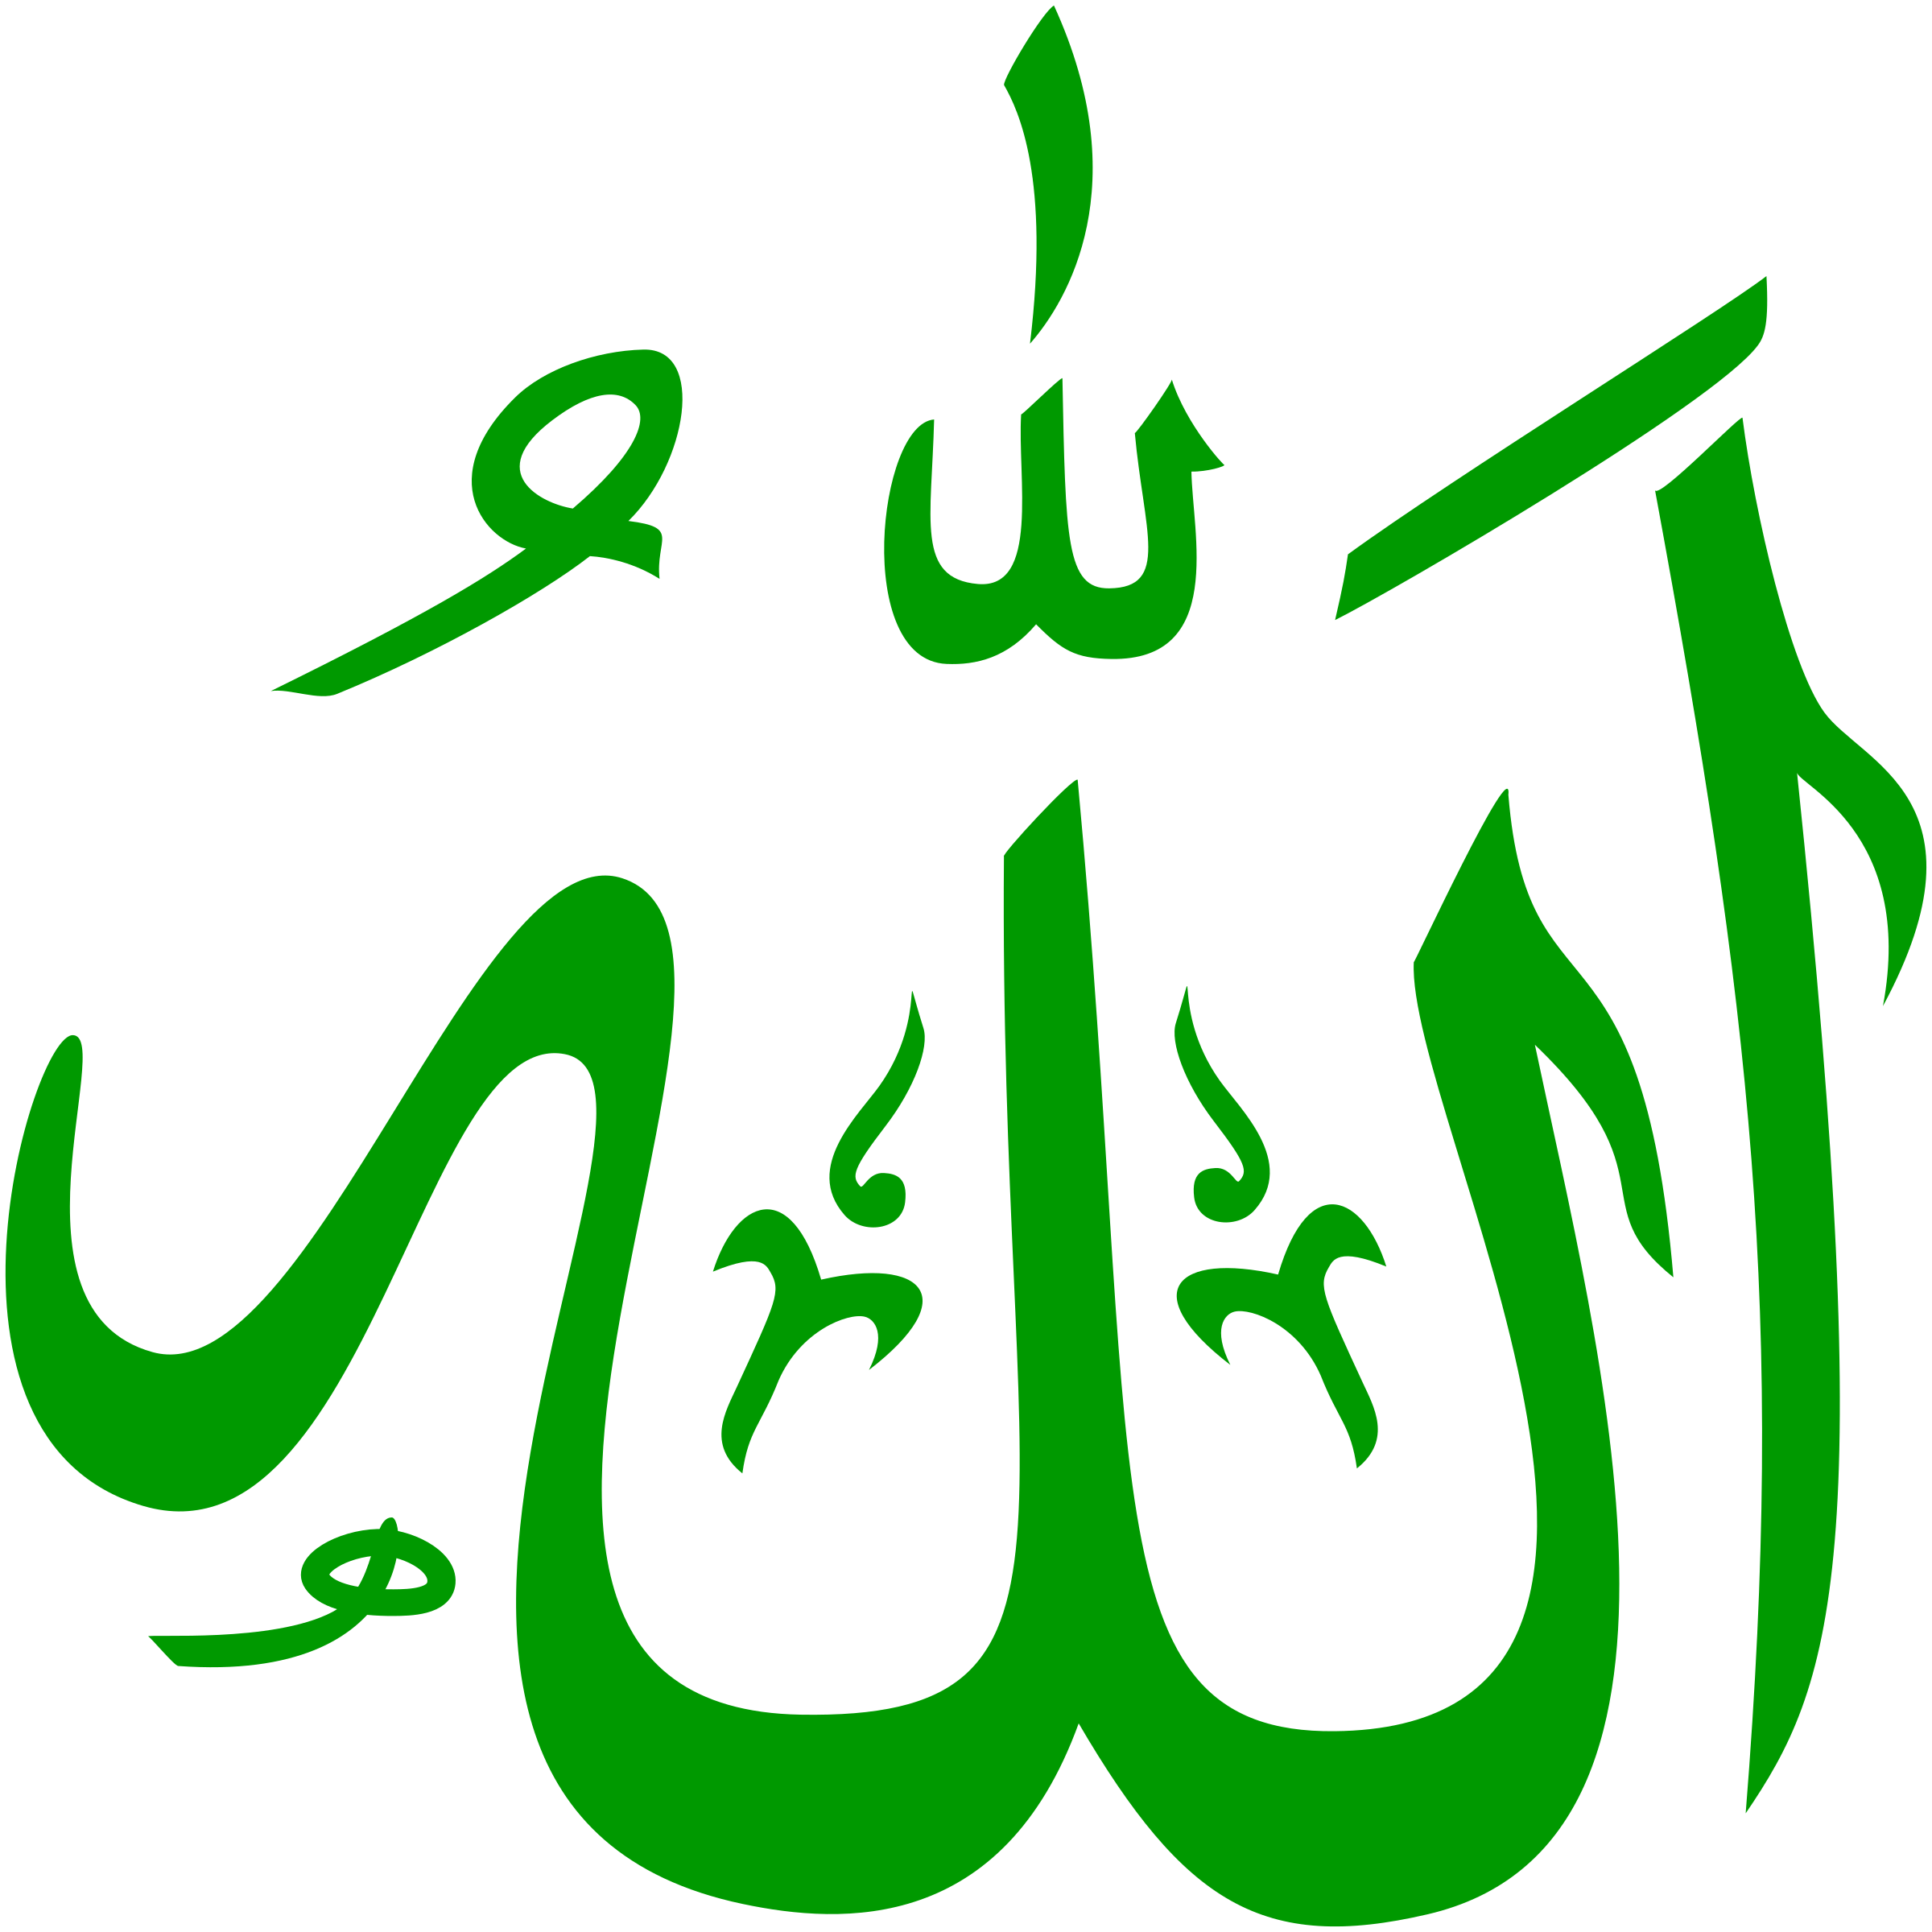 Allah (green) by liftarn